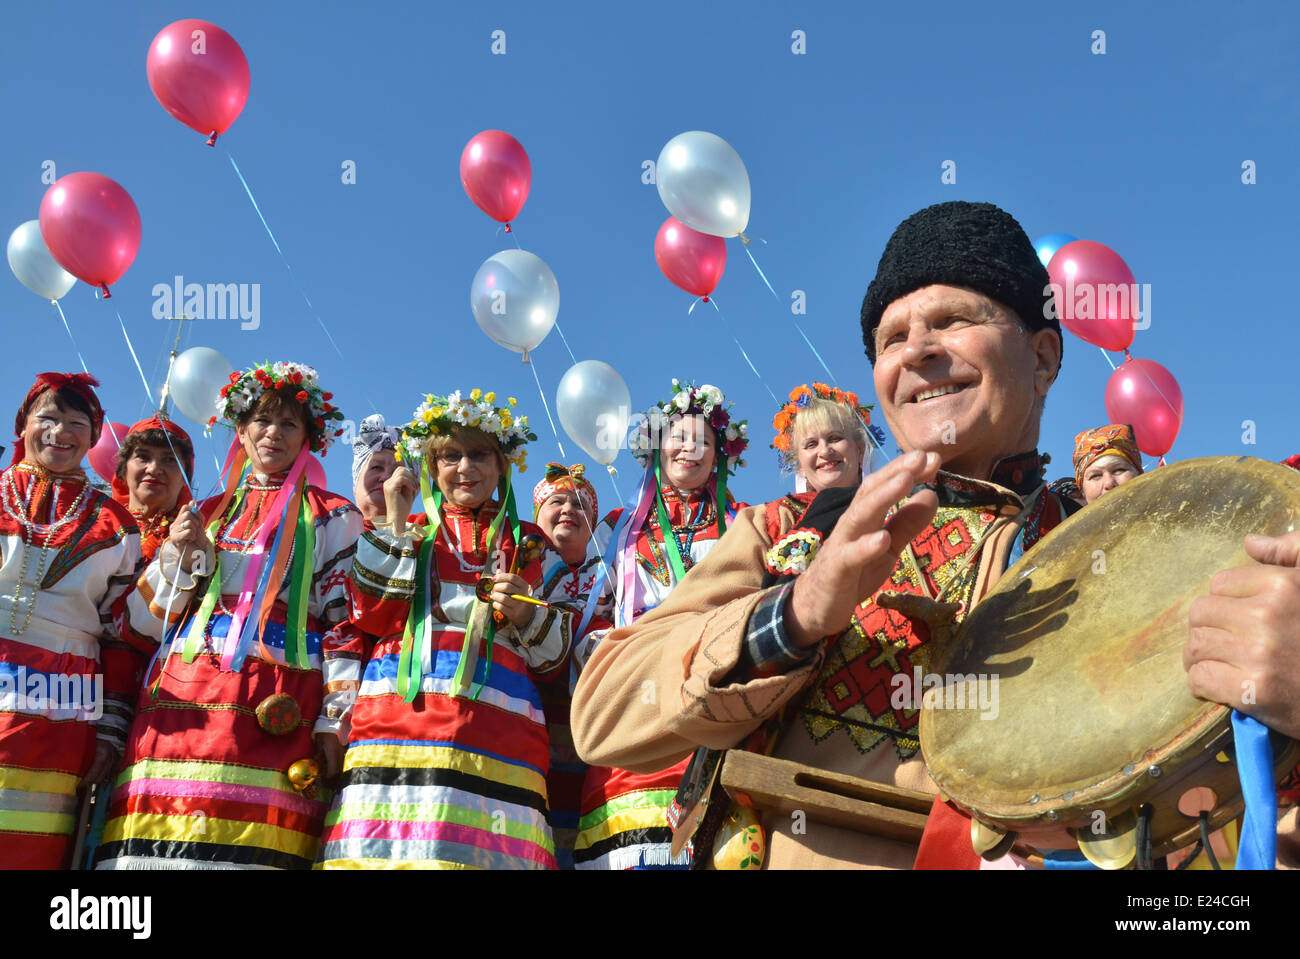 Costumes folkloriques ukrainiennes Photo Stock